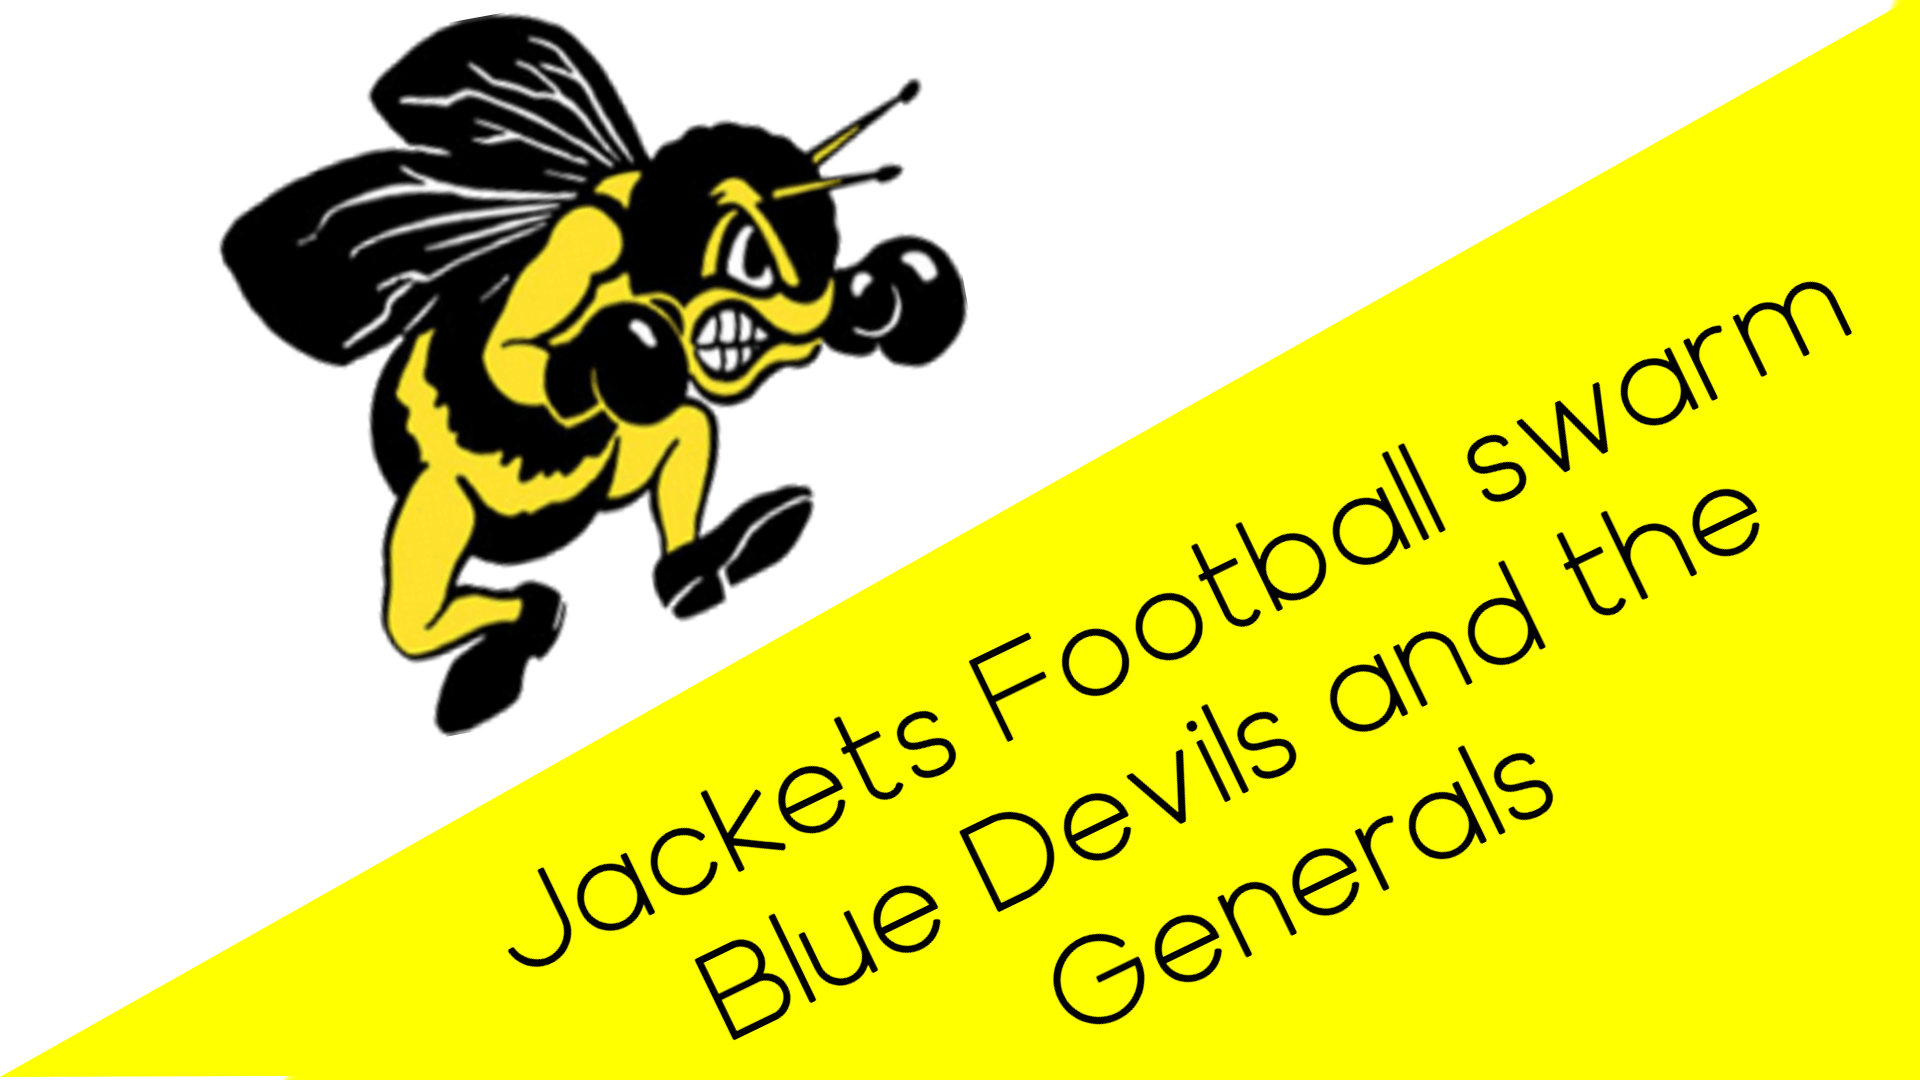 Jackets Football Swarms Blue Devils and Generals